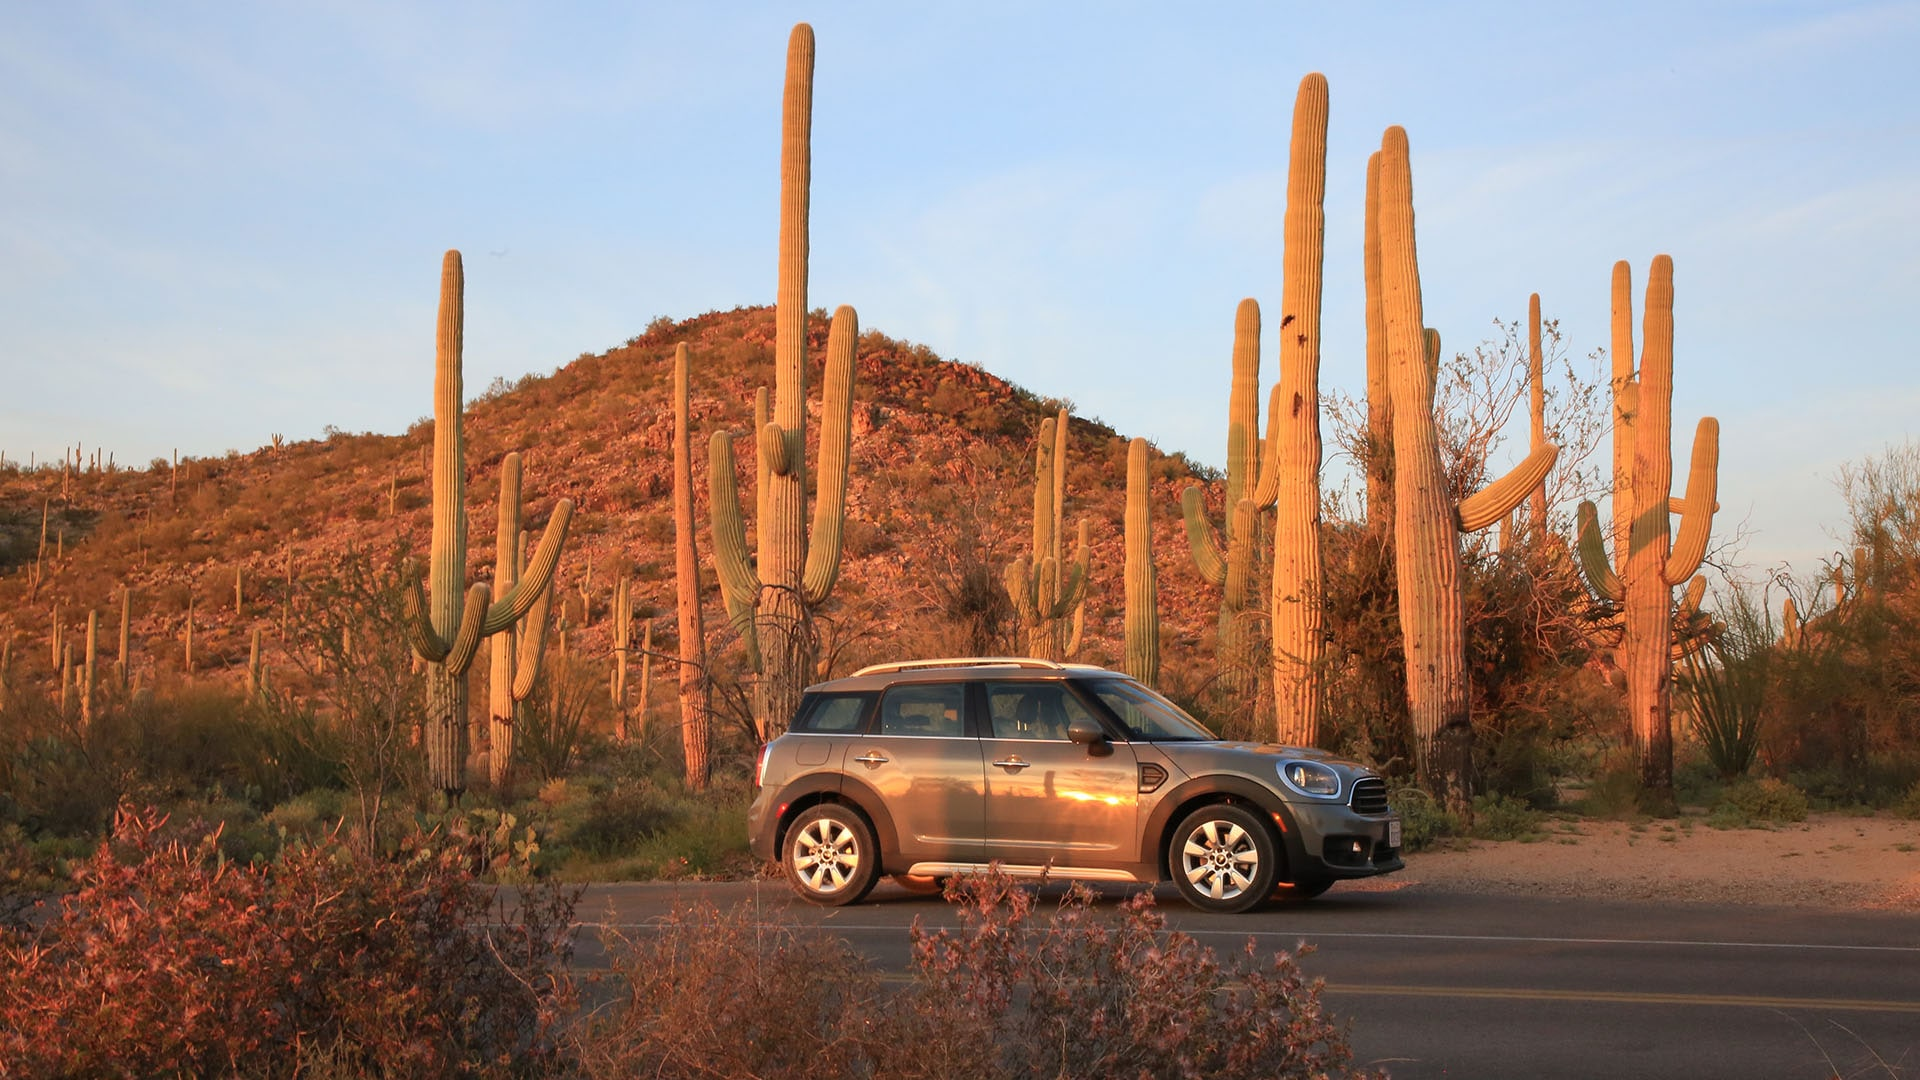 A Mini Cooper is dwarfed by giant saguaro cactus at Saguaro National Park in Arizona.